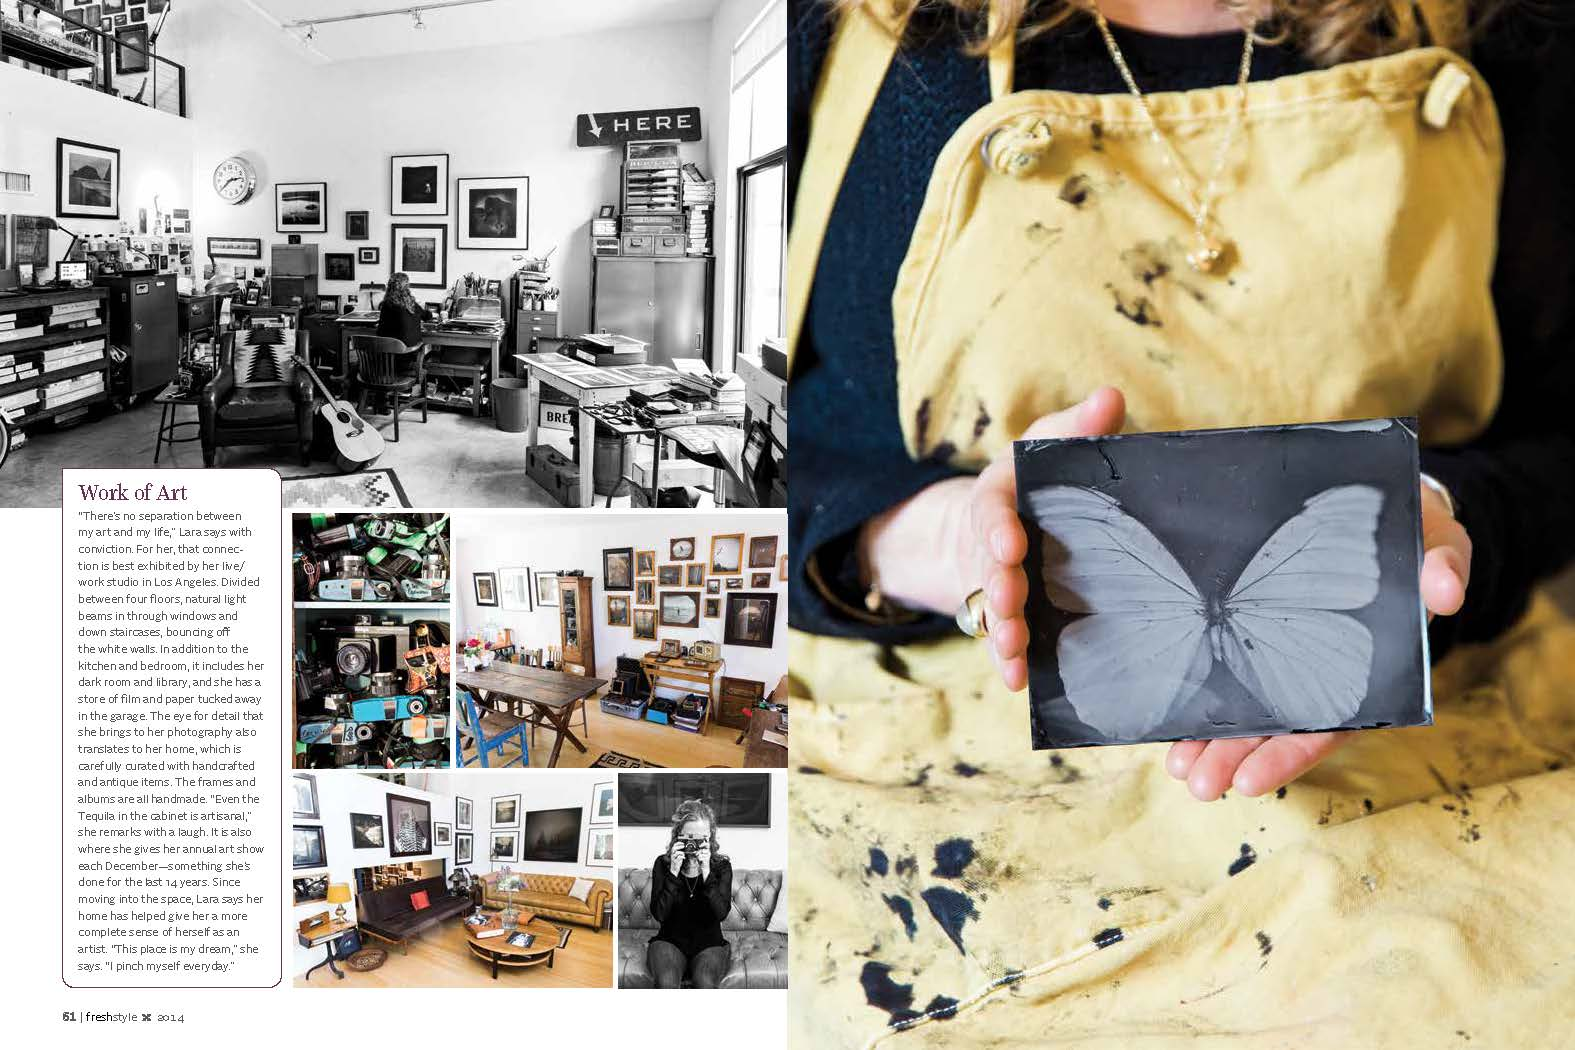 """Work of Art: """"There's no separation betweenmy art and my life,"""" Lara says withconviction. For her, that connectionis best exhibited by her live/work studio in Los Angeles. Dividedbetween four floors, natural lightbeams in through windows anddown staircases, bouncing offthe white walls. In addition to thekitchen and bedroom, it includes herdark room and library, and she has astore of film and paper tucked awayin the garage. The eye for detail thatshe brings to her photography alsotranslates to her home, which iscarefully curated with handcraftedand antique items. The frames andalbums are all handmade. """"Even theTequila in the cabinet is artisanal,""""she remarks with a laugh. It is alsowhere she gives her annual art showeach December—something she'sdone for the last 14 years. Sincemoving into the space, Lara says herhome has helped give her a morecomplete sense of herself as anartist.""""This place is my dream,"""" shesays. """"I pinch myself everyday."""""""